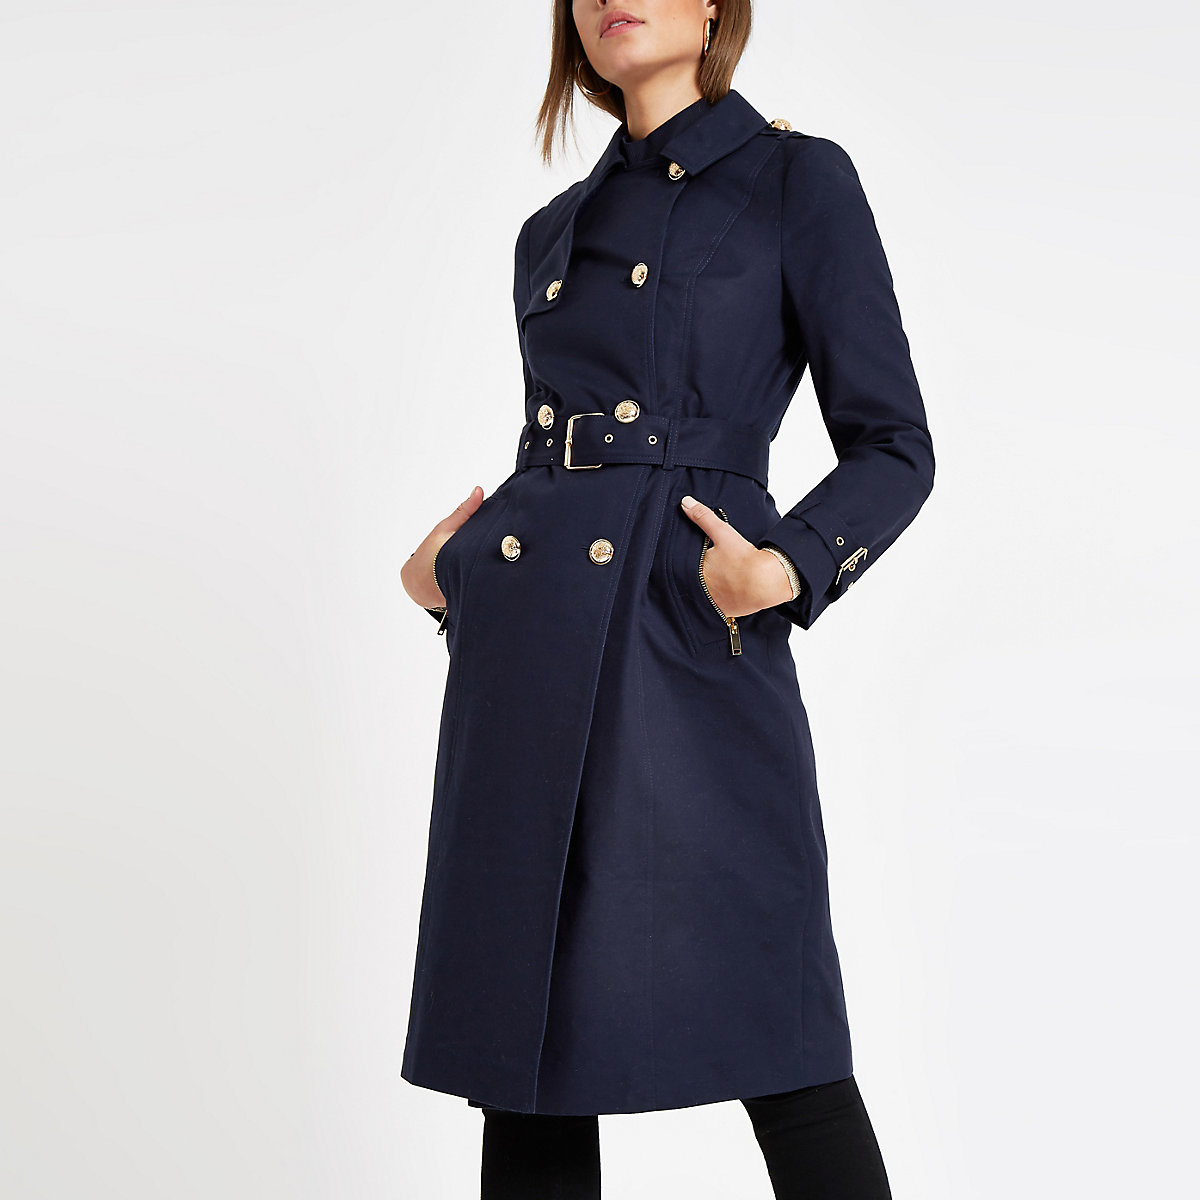 Navy double breasted belted trench coat